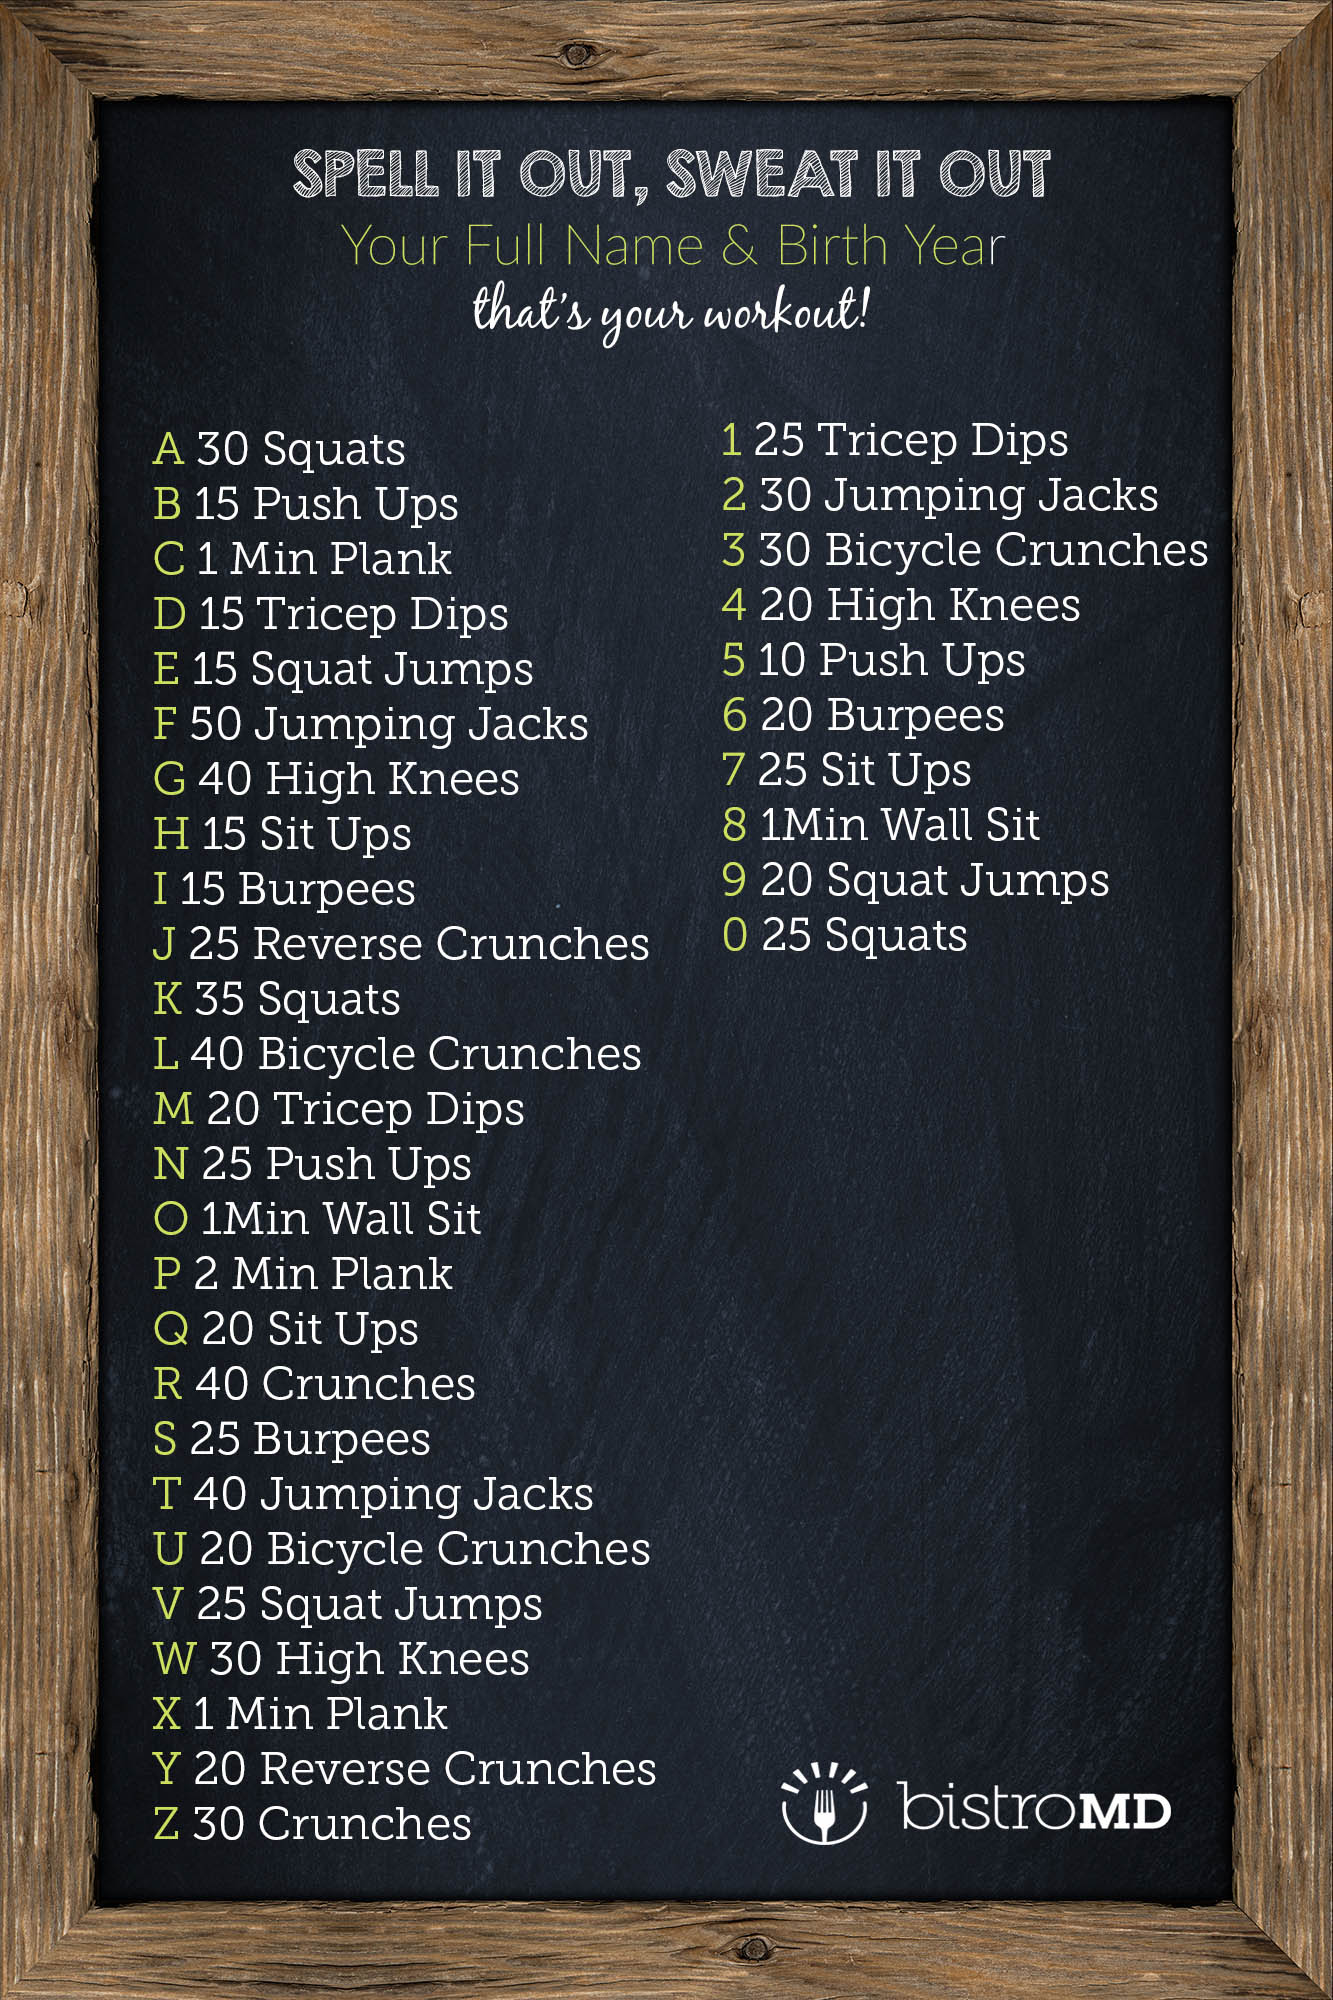 Spell It Out, Sweat It Out Custom Crossfit Workout By BistroMD